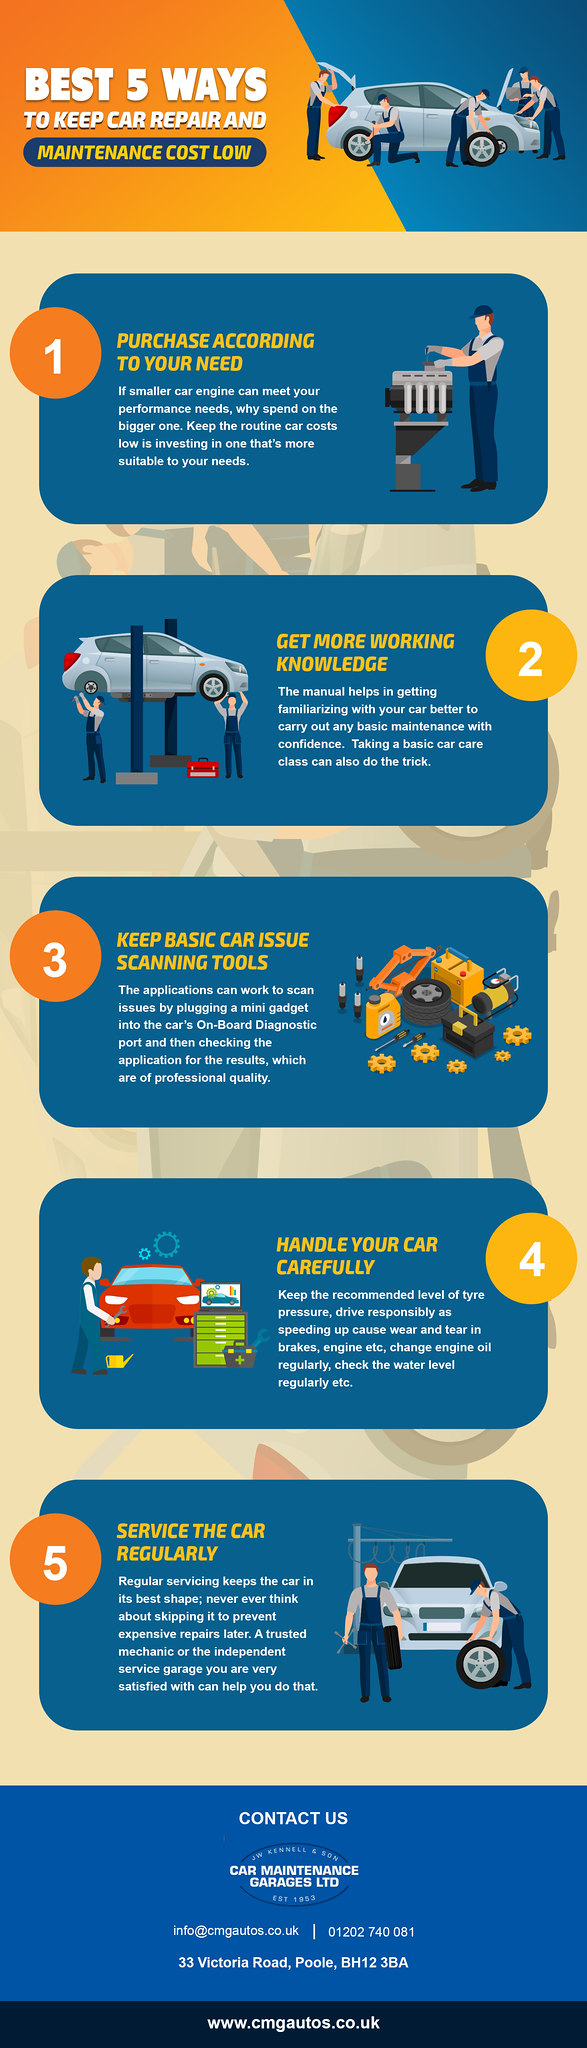 Best Ways to Keep Car Repair and Maintenance Cost Low